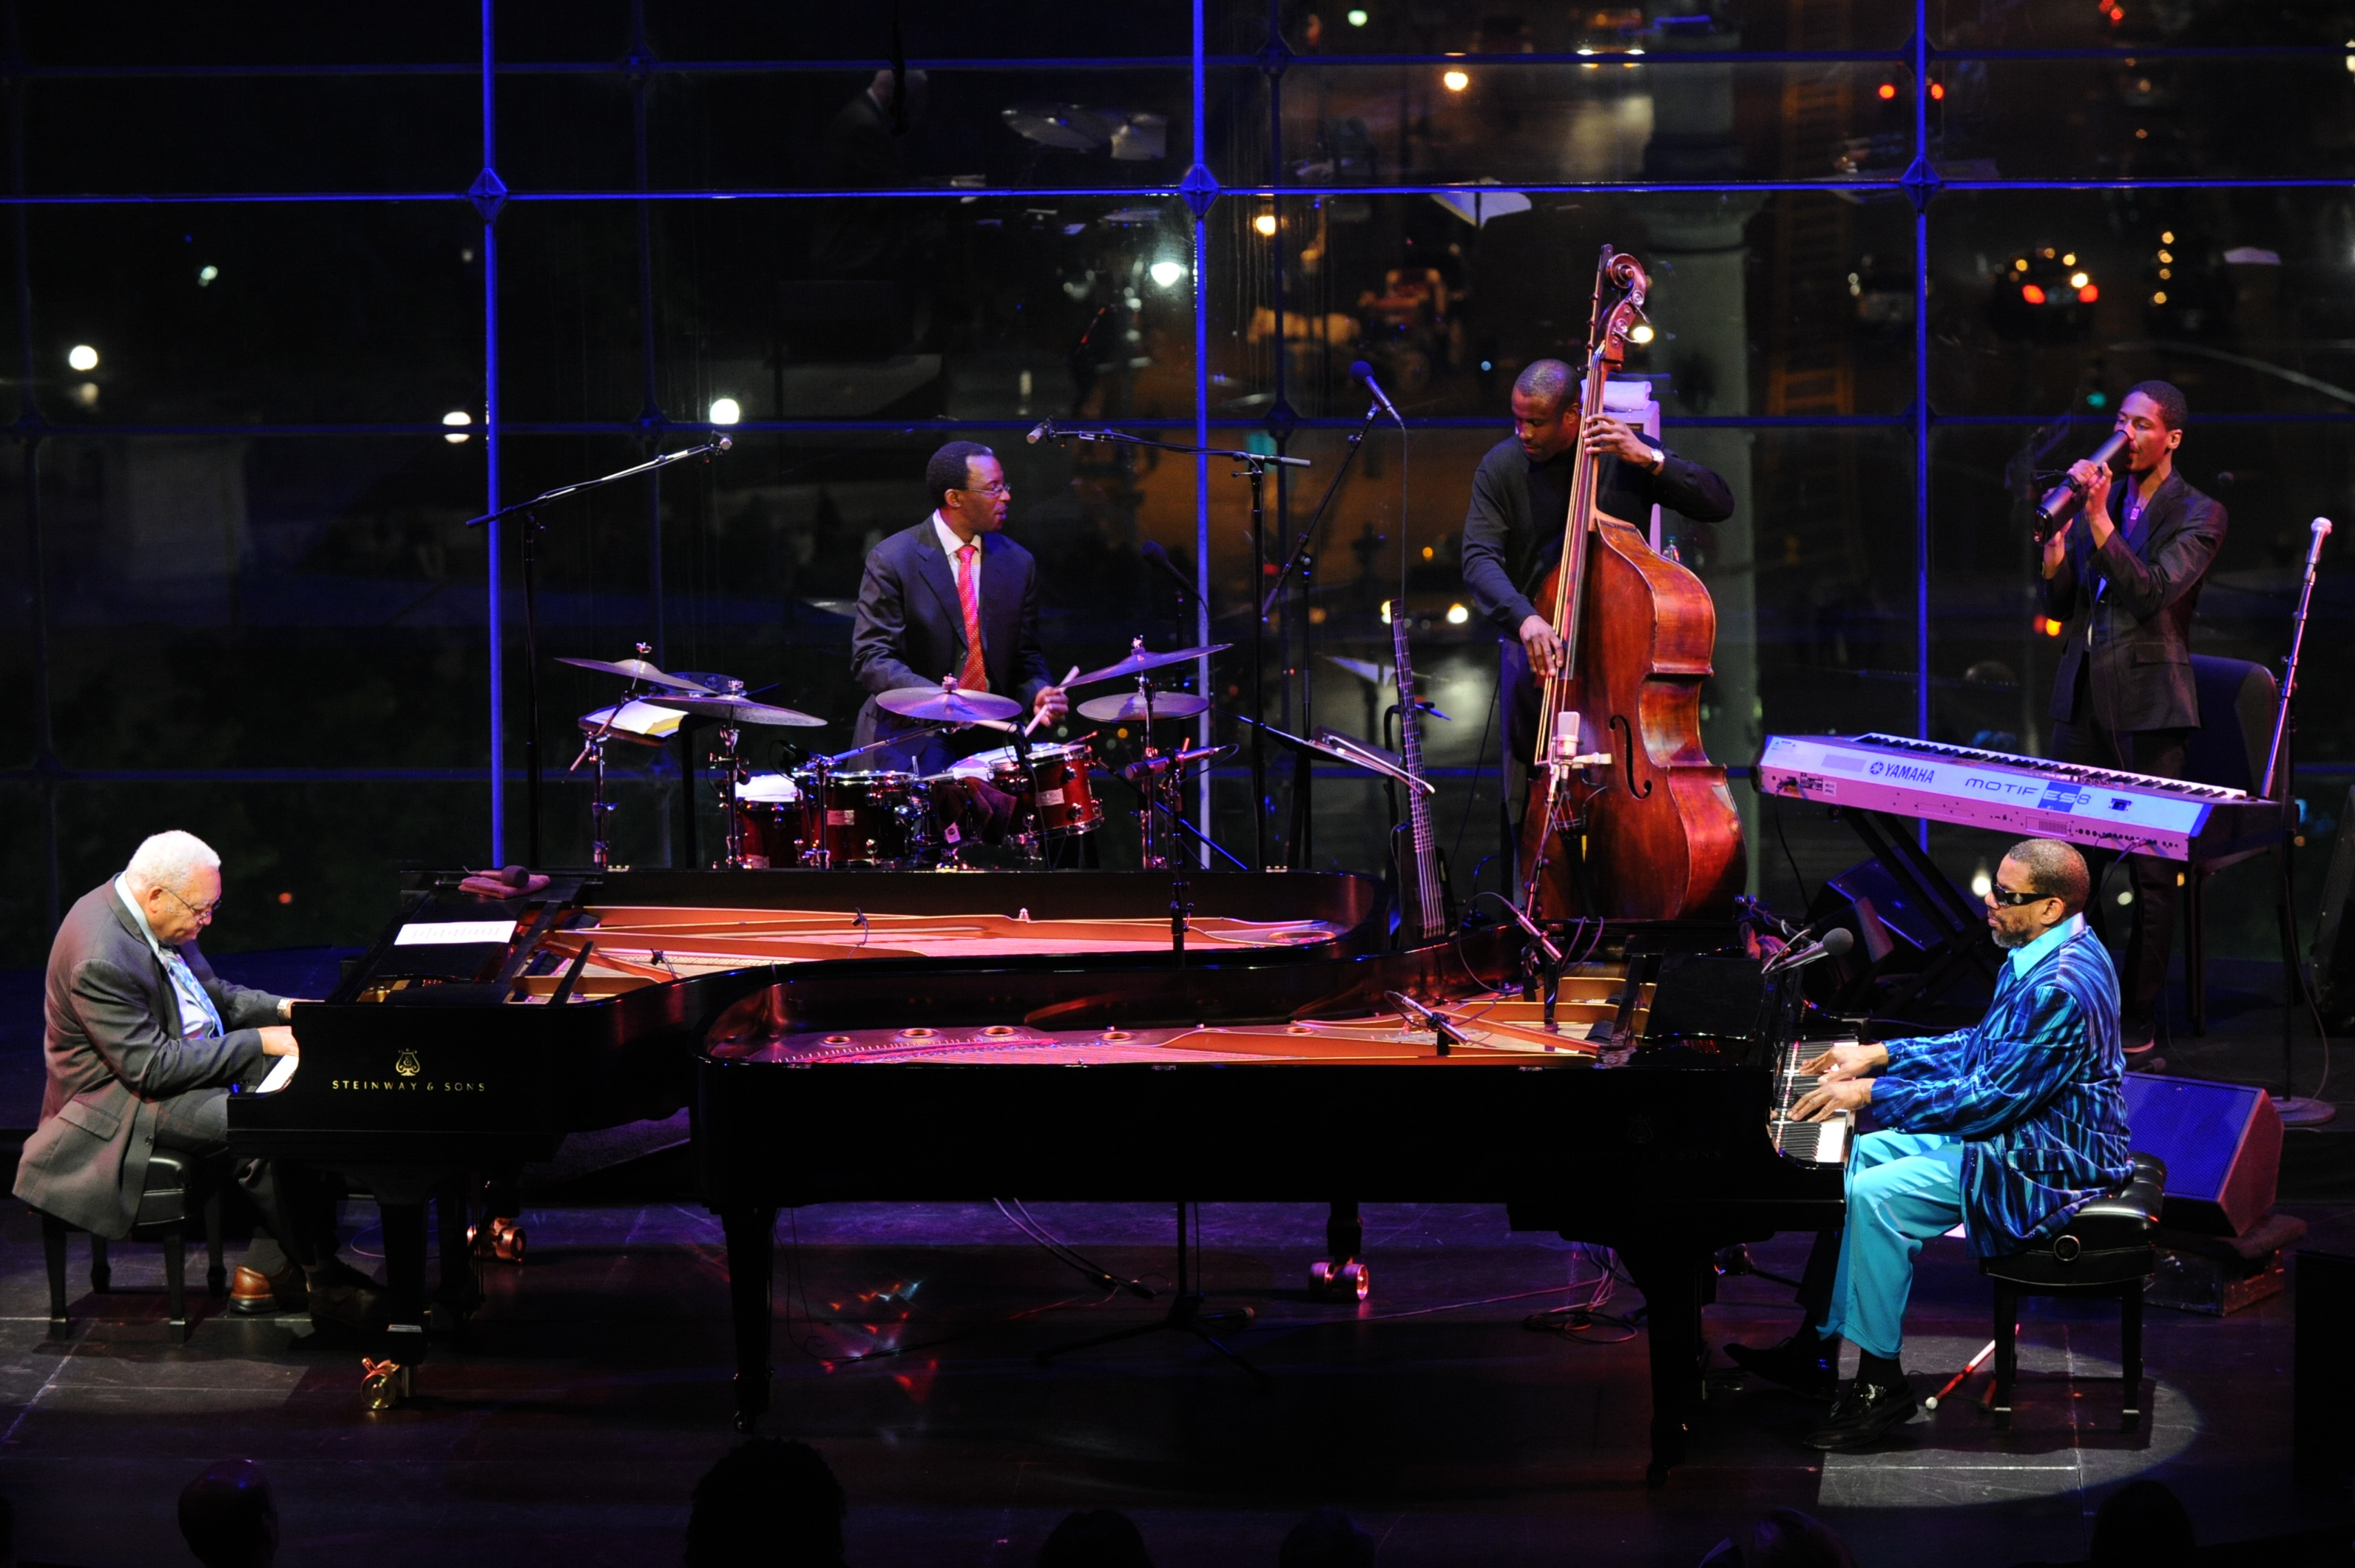 © Frank Stewart/Jazz at Lincoln Center. All Rights Reserved.